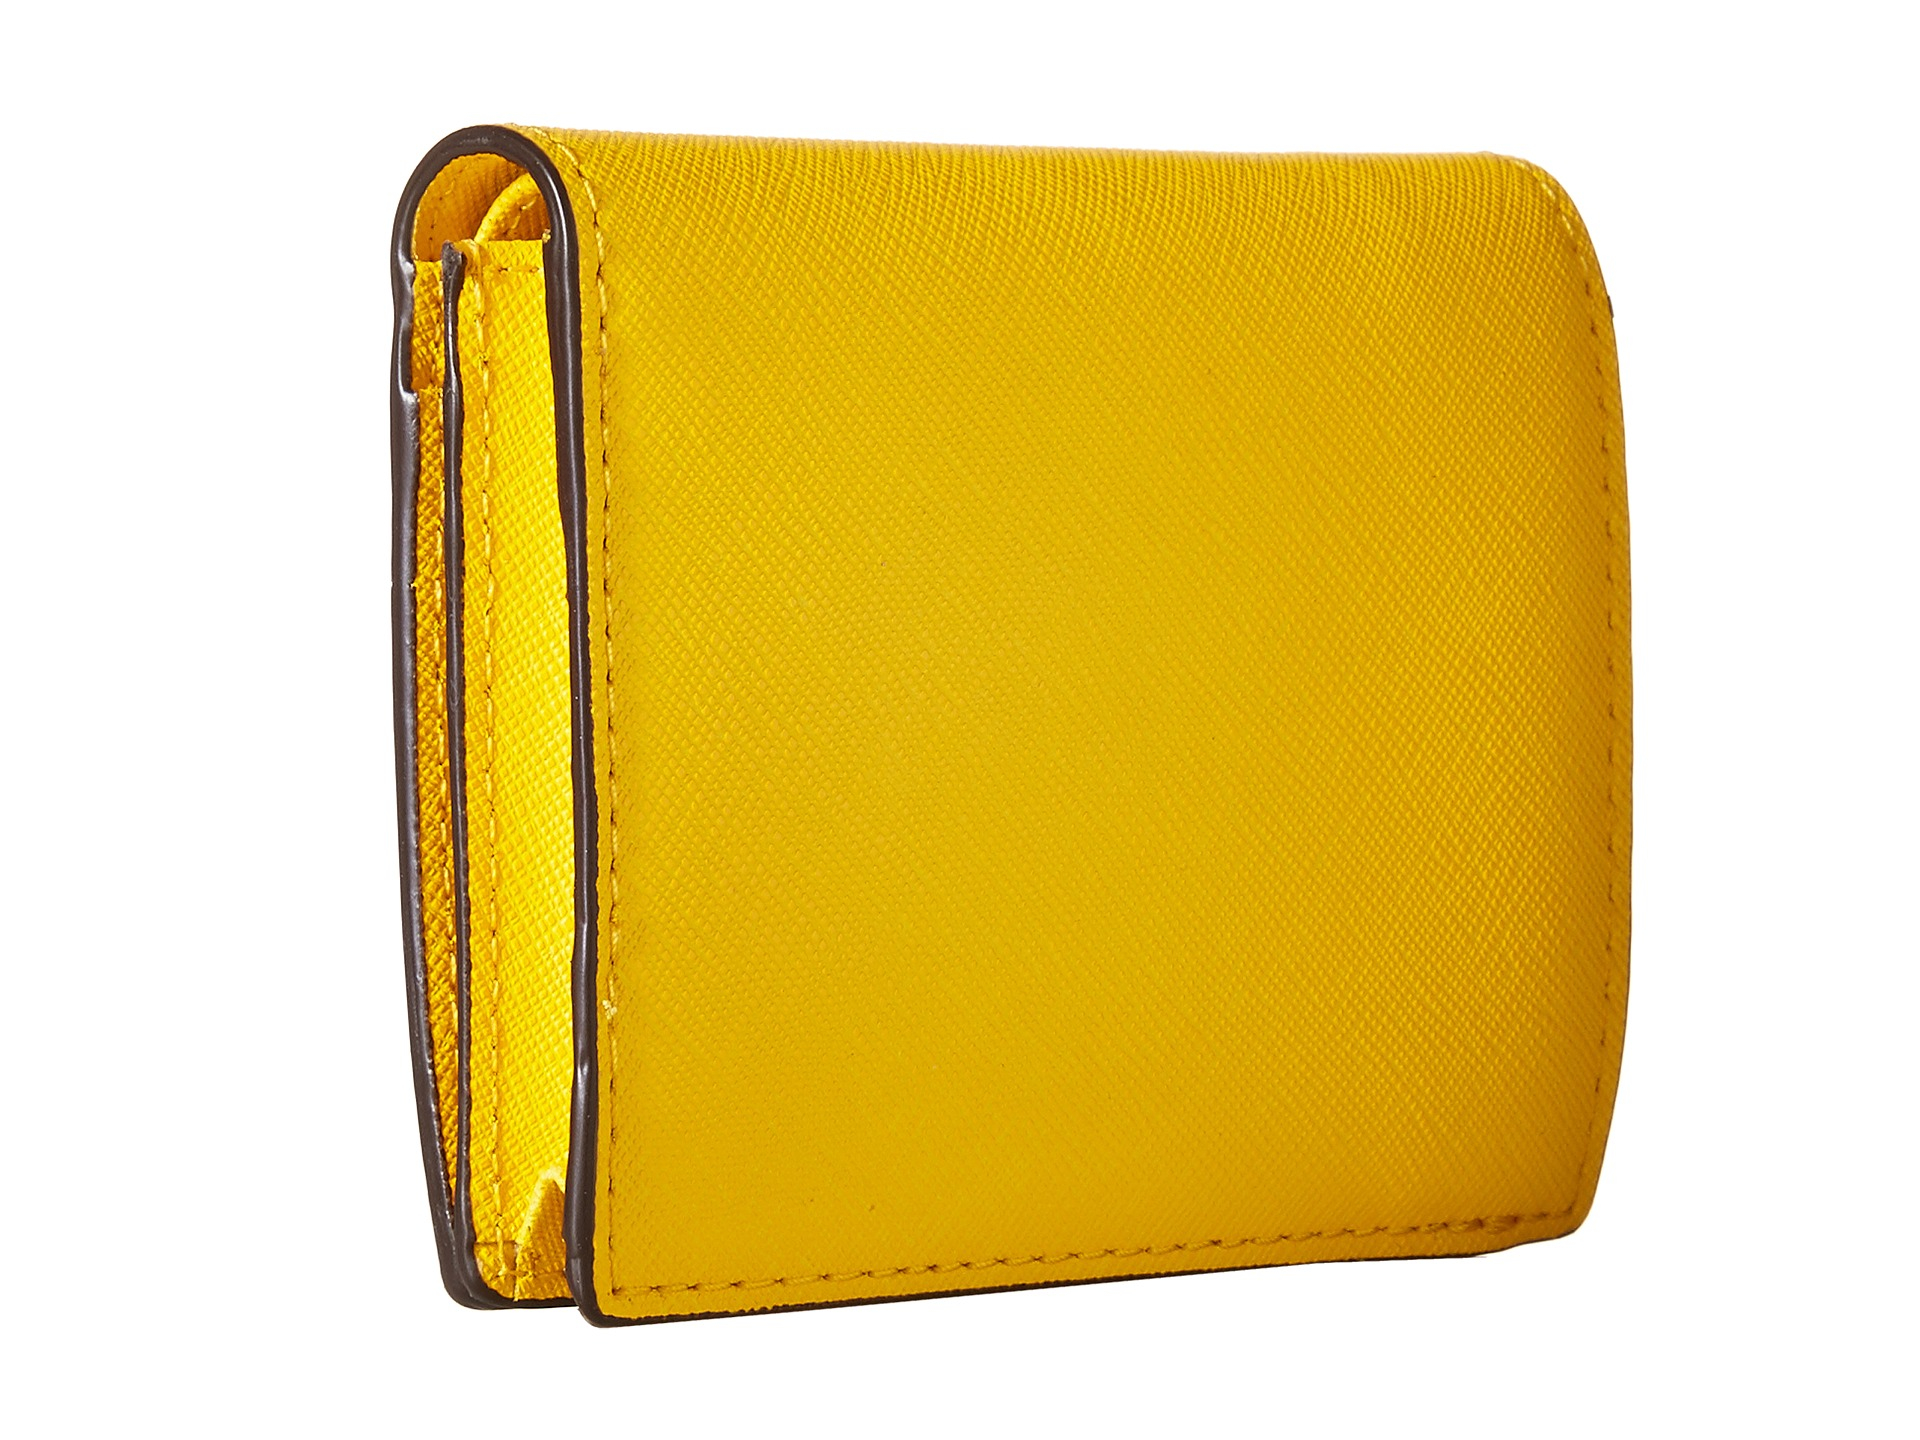 82968415e0ad1 Lyst - MICHAEL Michael Kors Jet Set Travel Flap Card Holder in Yellow